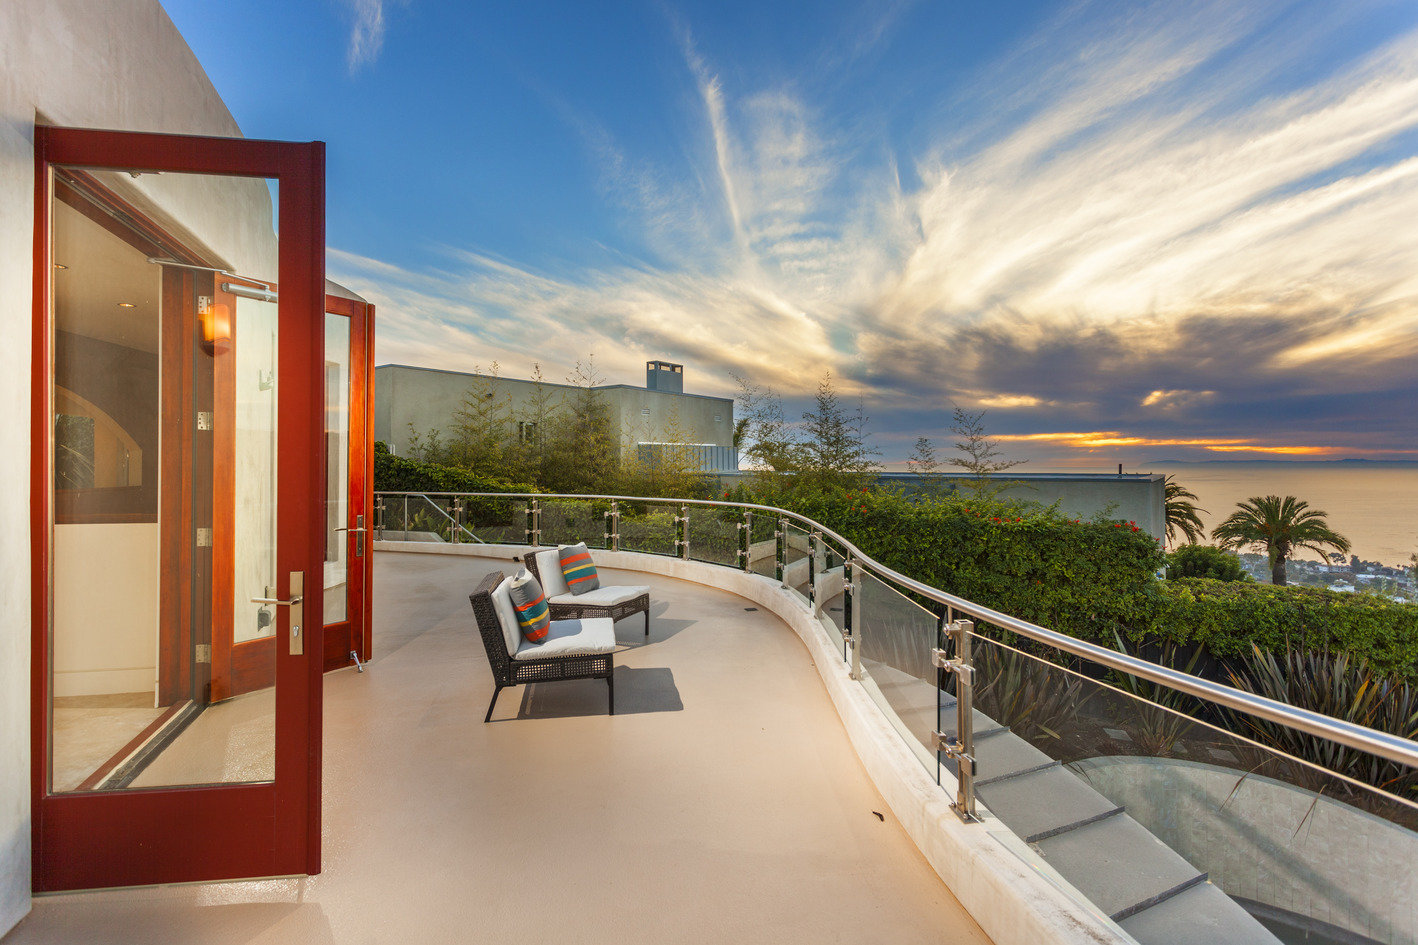 Contemporary Ocean View Homes for Sale in Orange County, CA